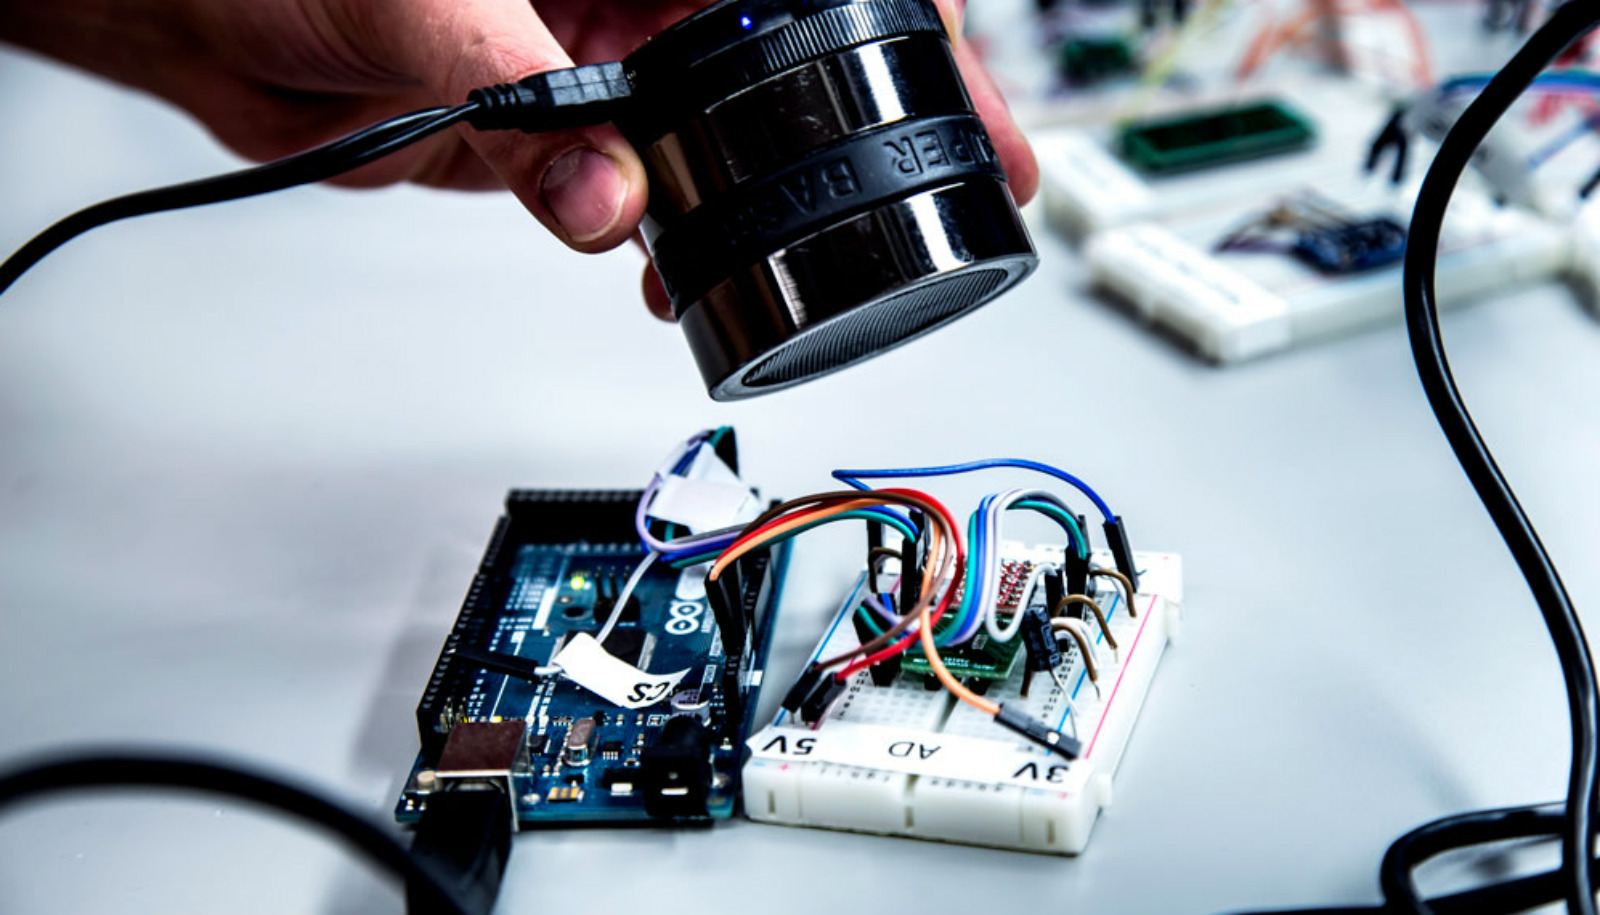 Scientists Can Hack Sensors In Cars And Phones With A 5 Speaker For Sound Sensor Alarm This Is The Circuit Futurity